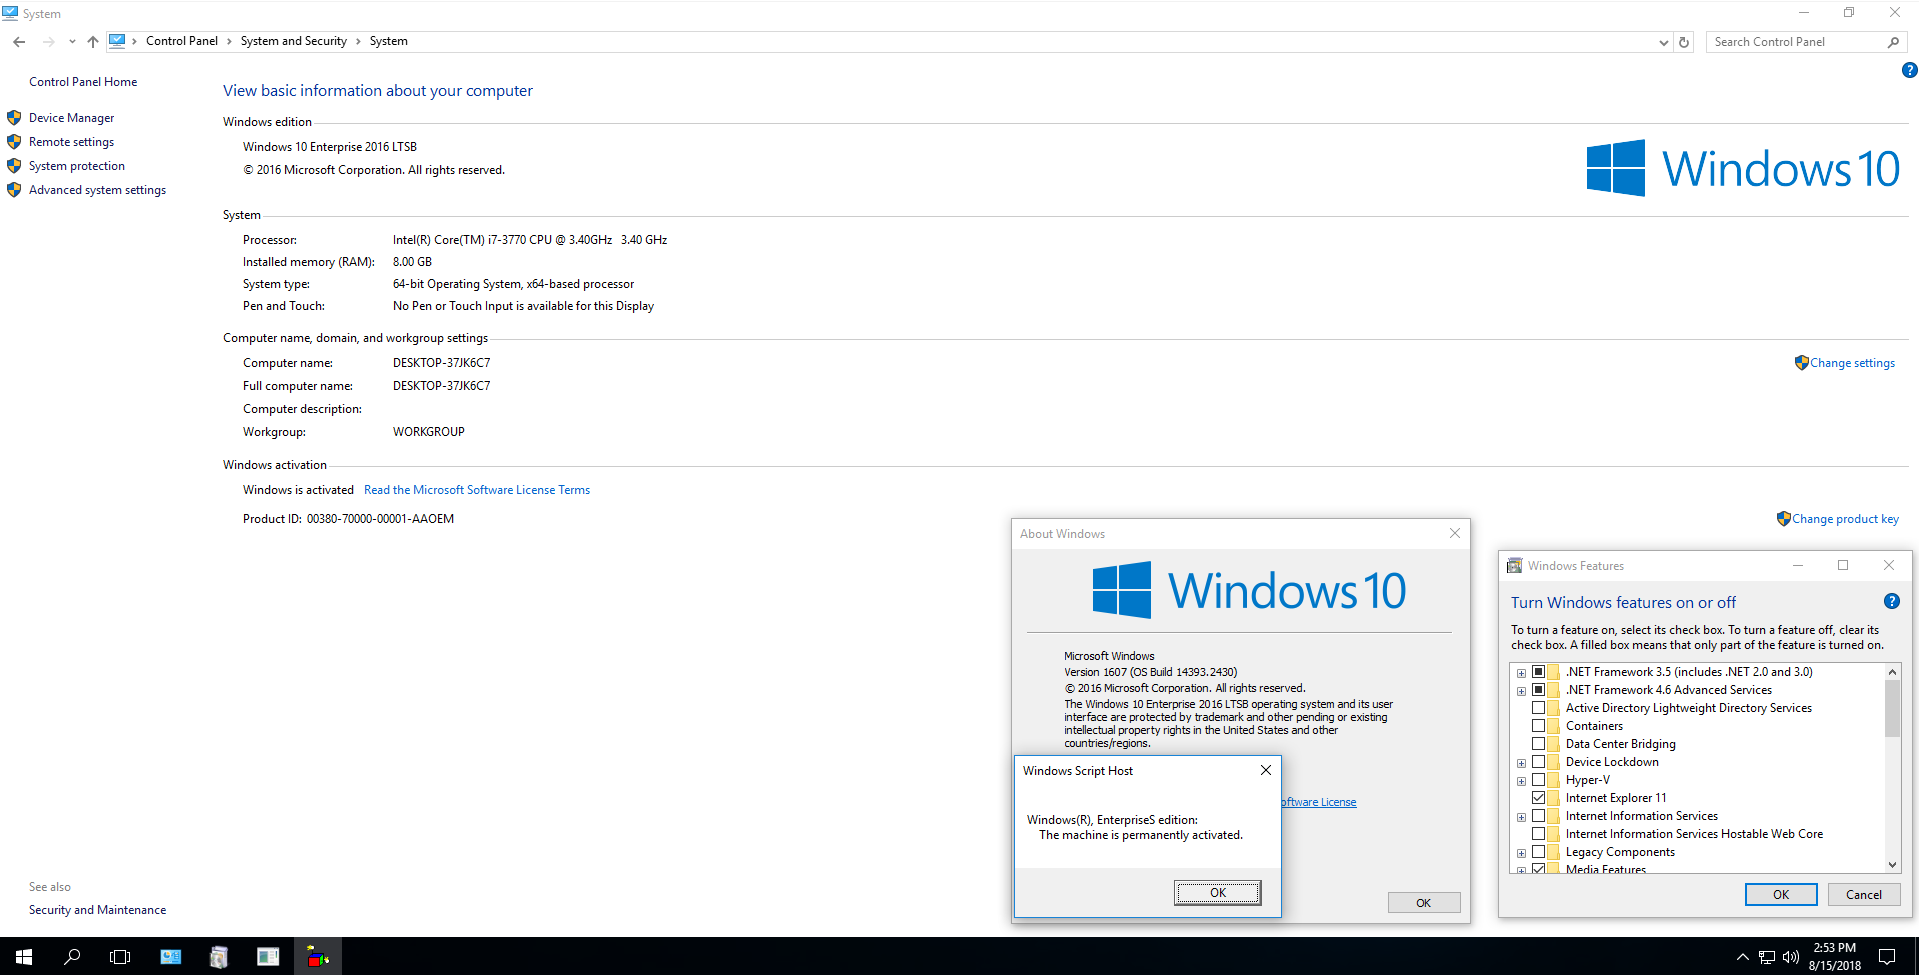 Windows 10 Enterprise LTSB v1607 (Build 14393 2430) 2in1 English